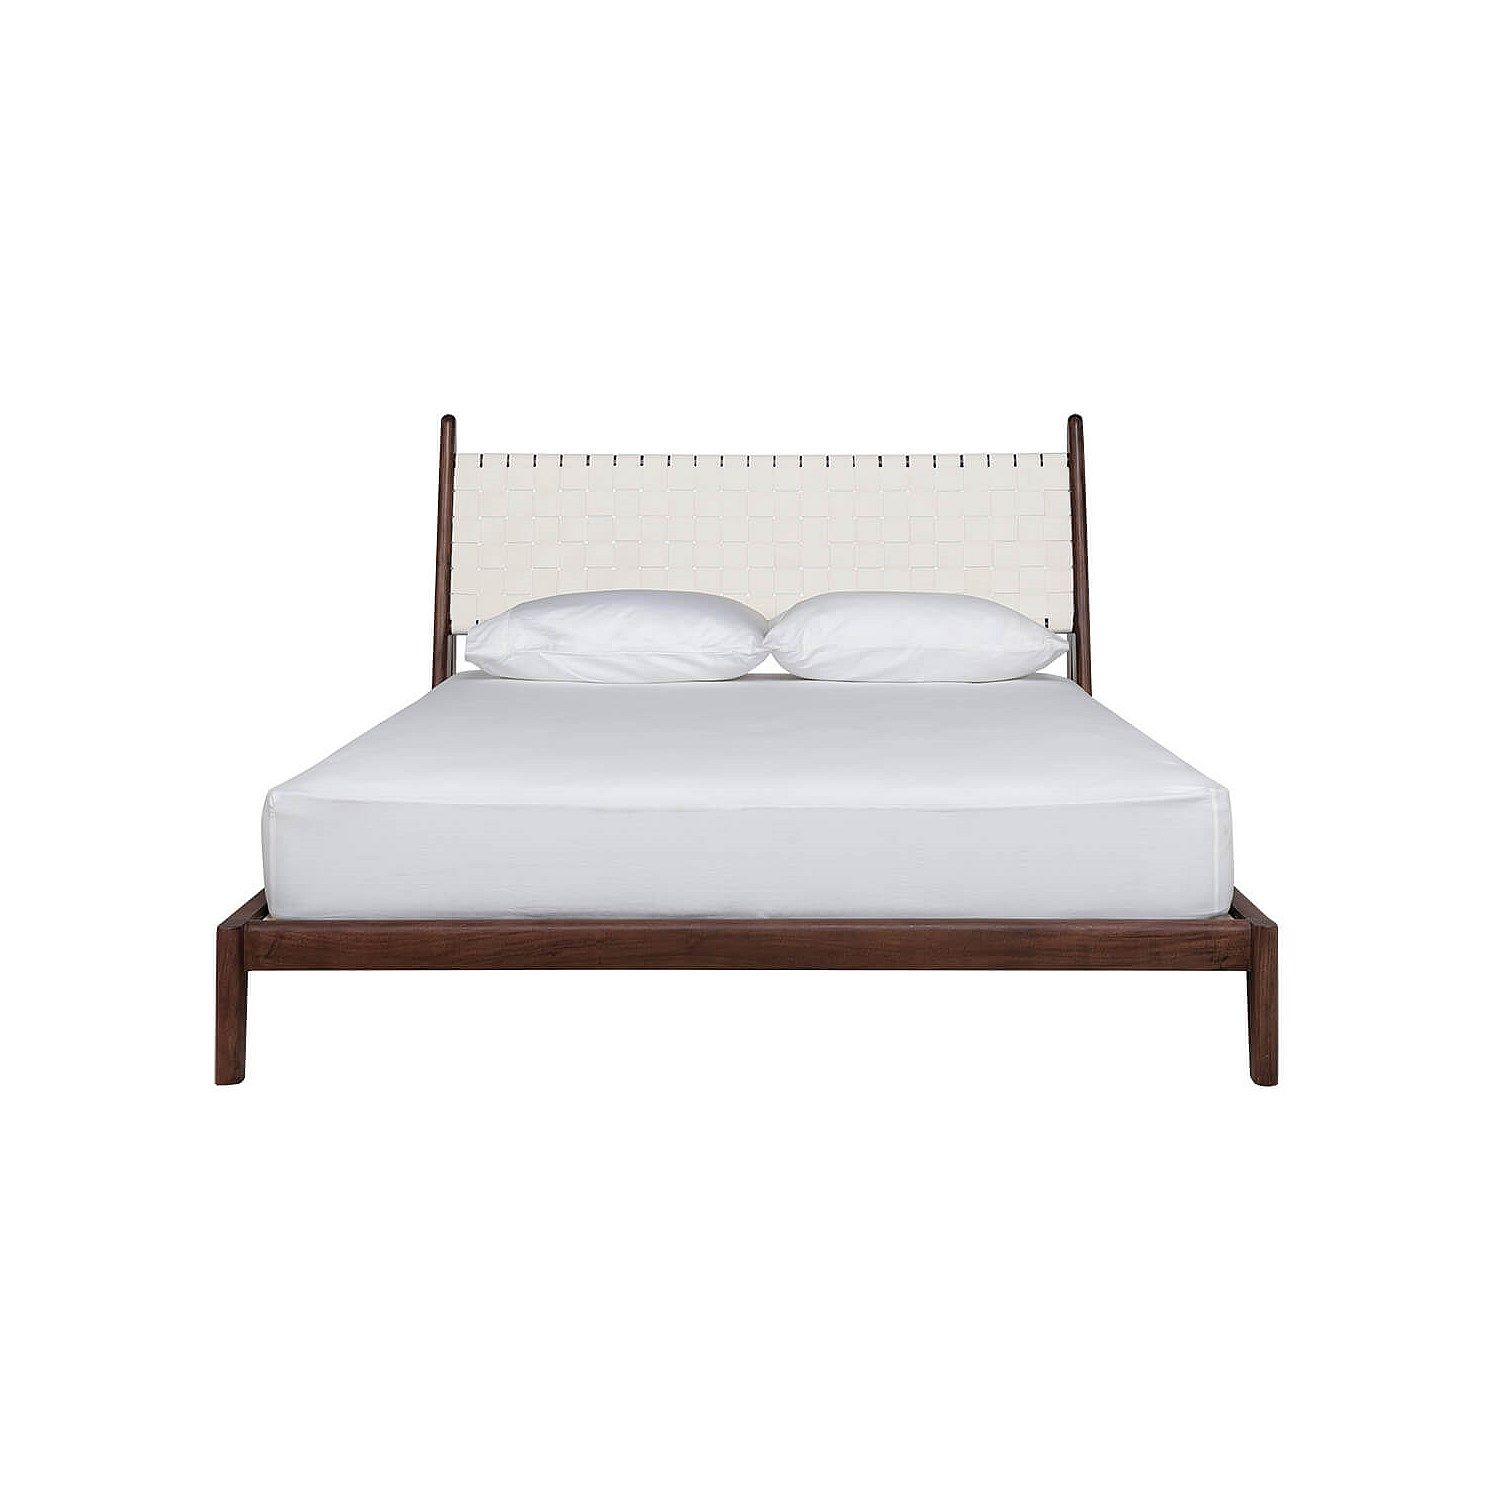 Queen Bed Sale Bedroom Furniture For Sale View Range Online Now Otto Bed Frame